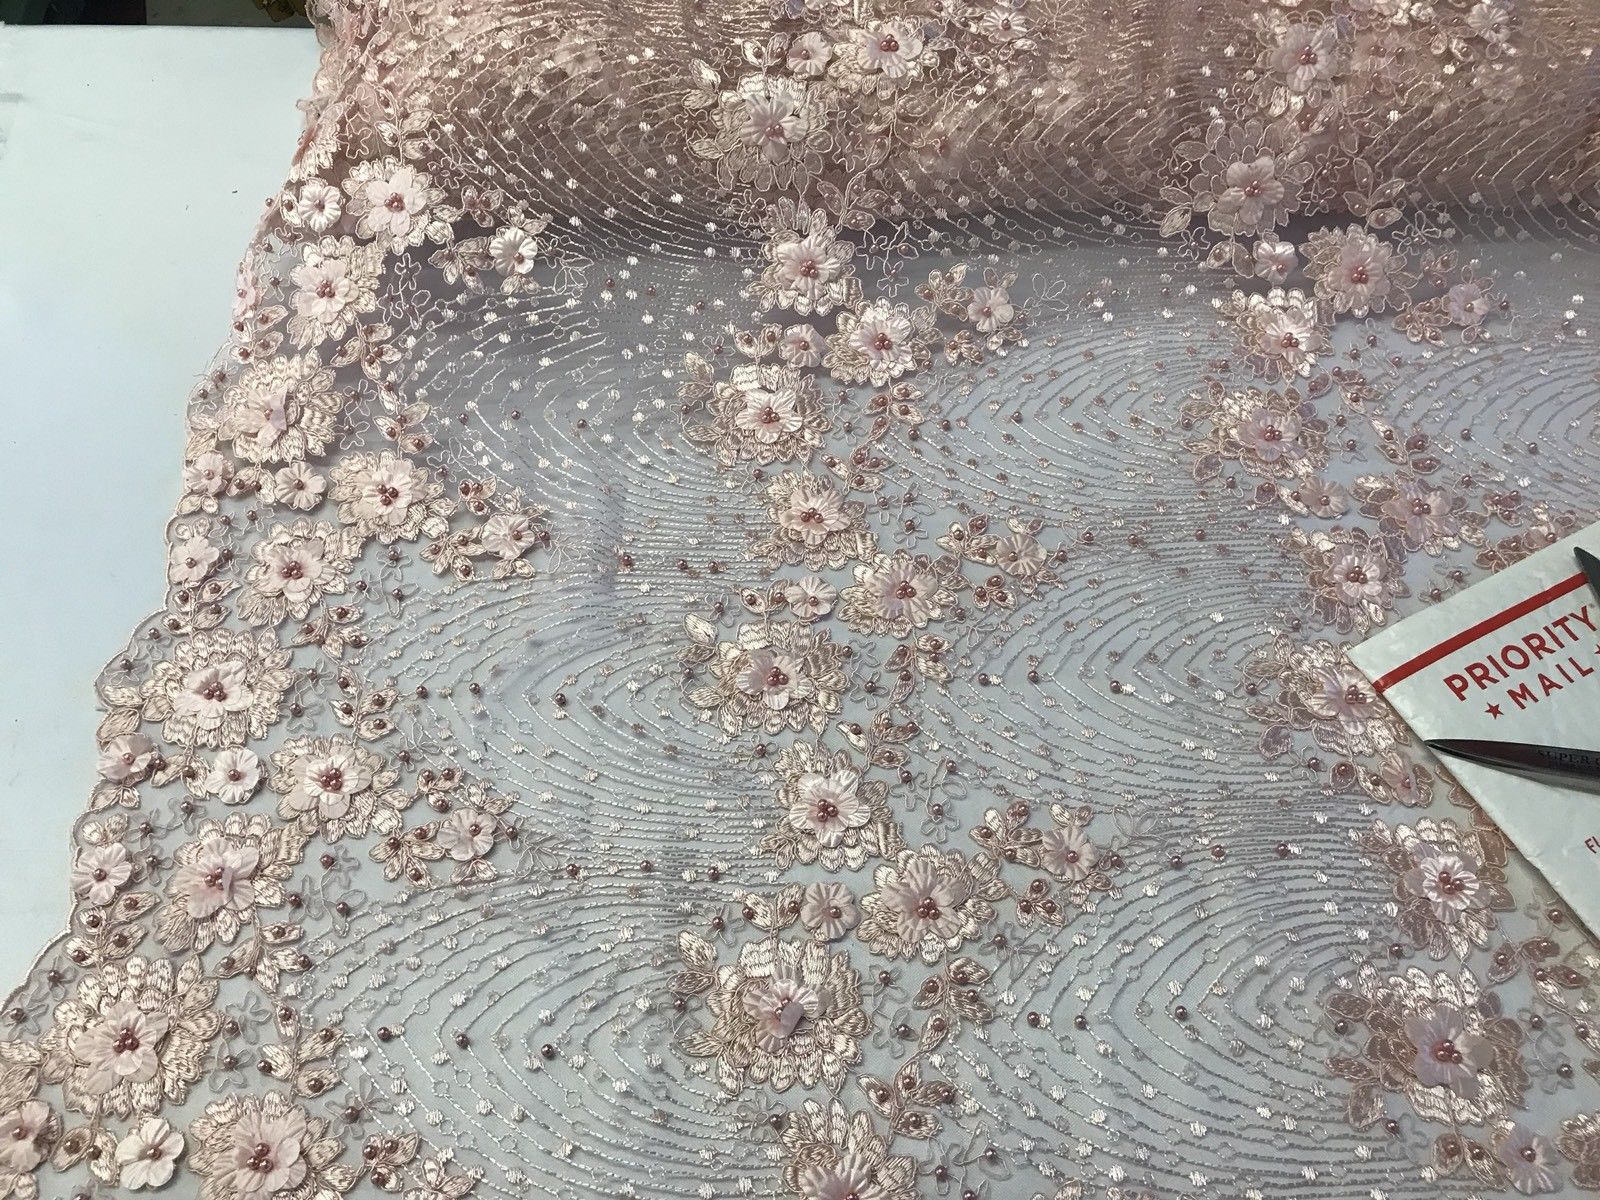 Bridal Flower Embroidered Floral Mesh & Pearls By Yard Lace Fabric Light Peach - KINGDOM OF FABRICS